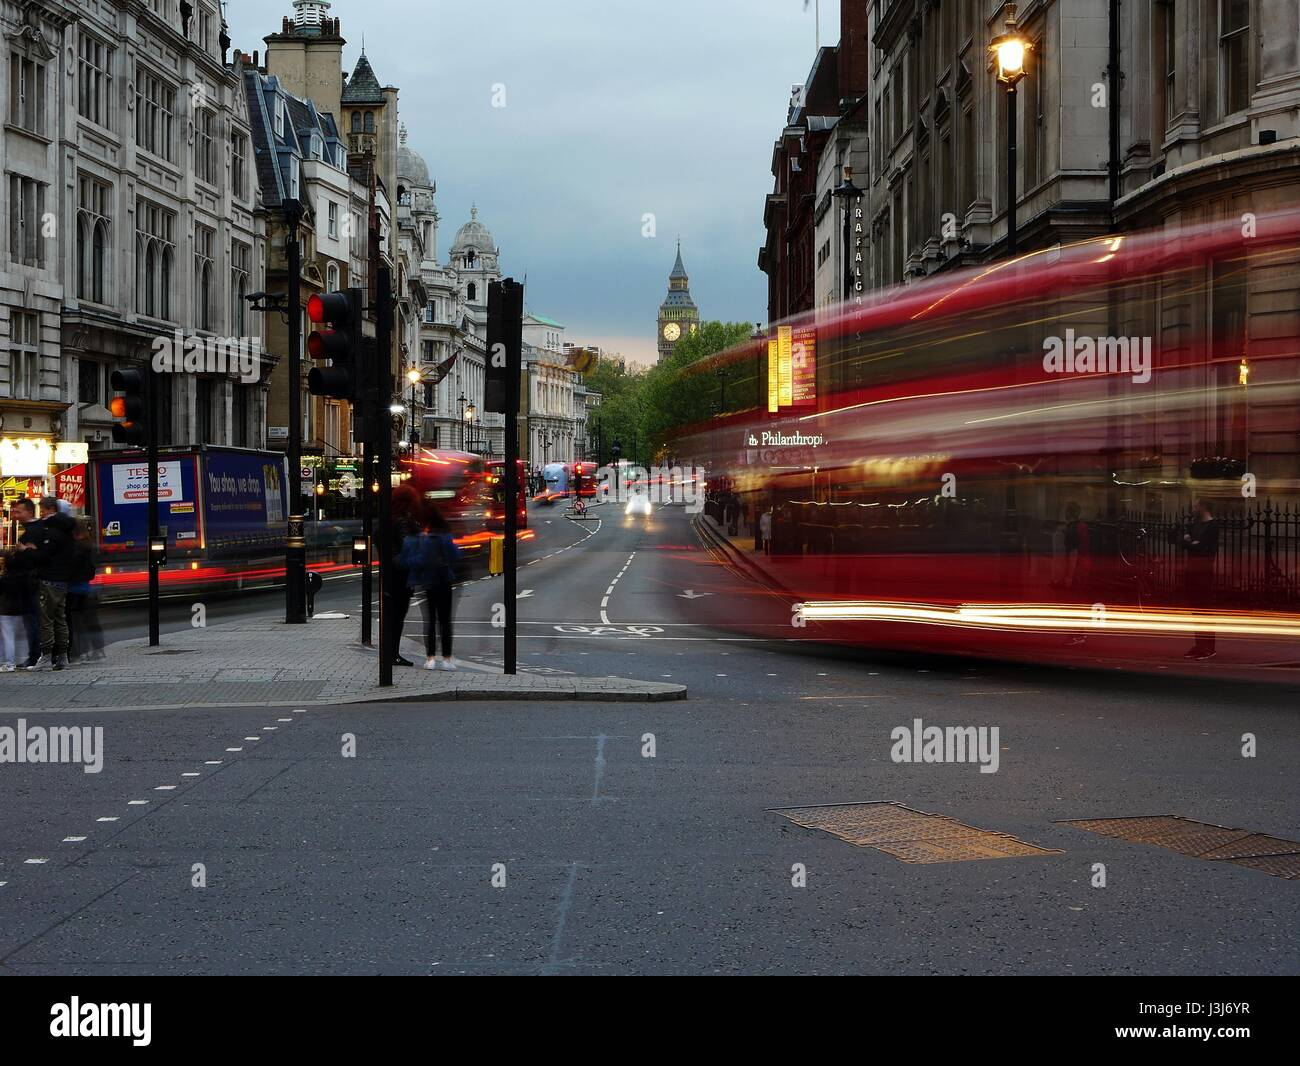 Light trails from cars and buses at Trafalgar Square, London, UK. Night time - Big Ben in background Stock Photo